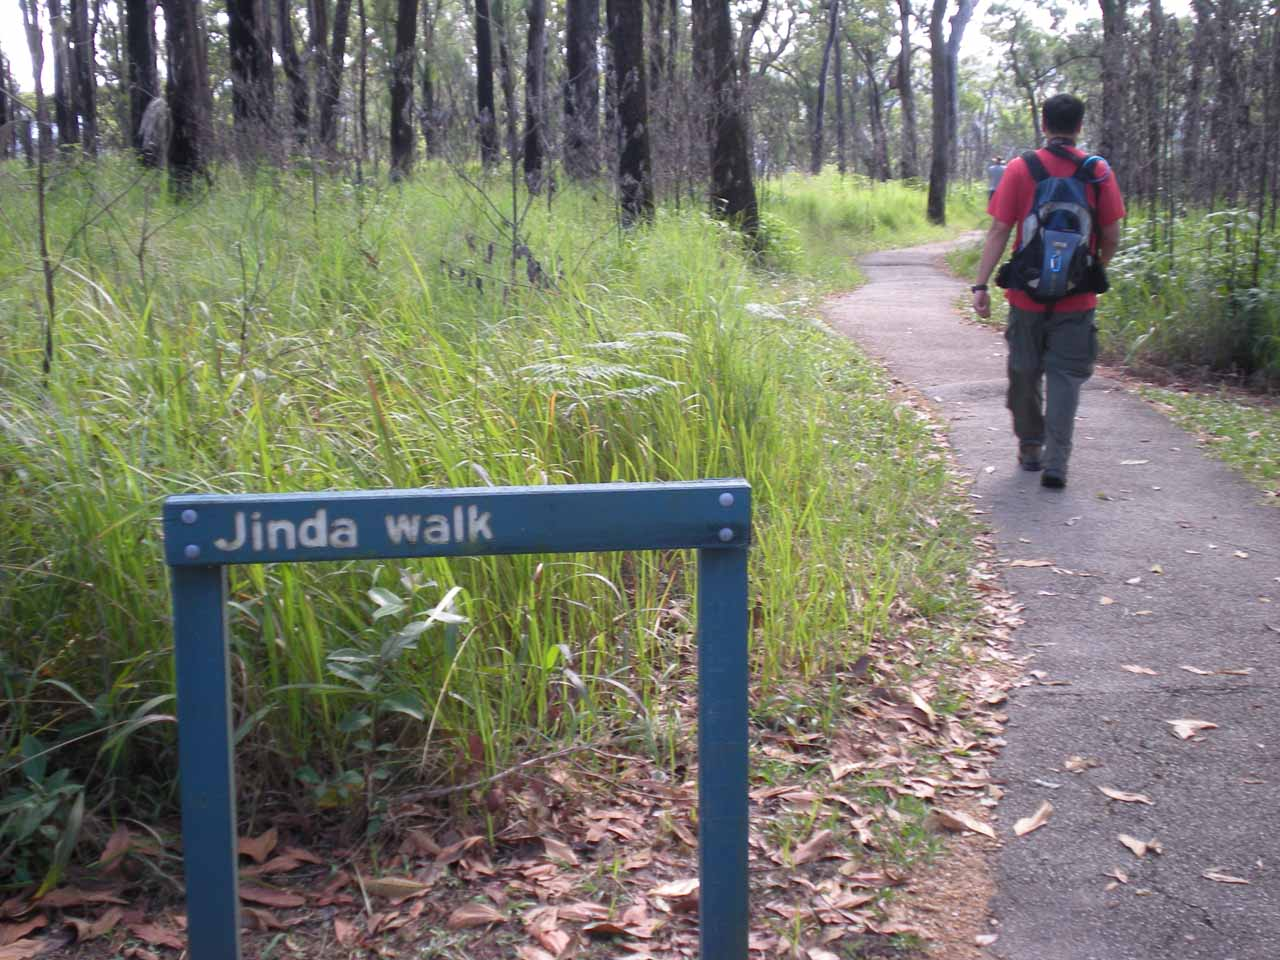 That's me going past the Jinda Walk sign